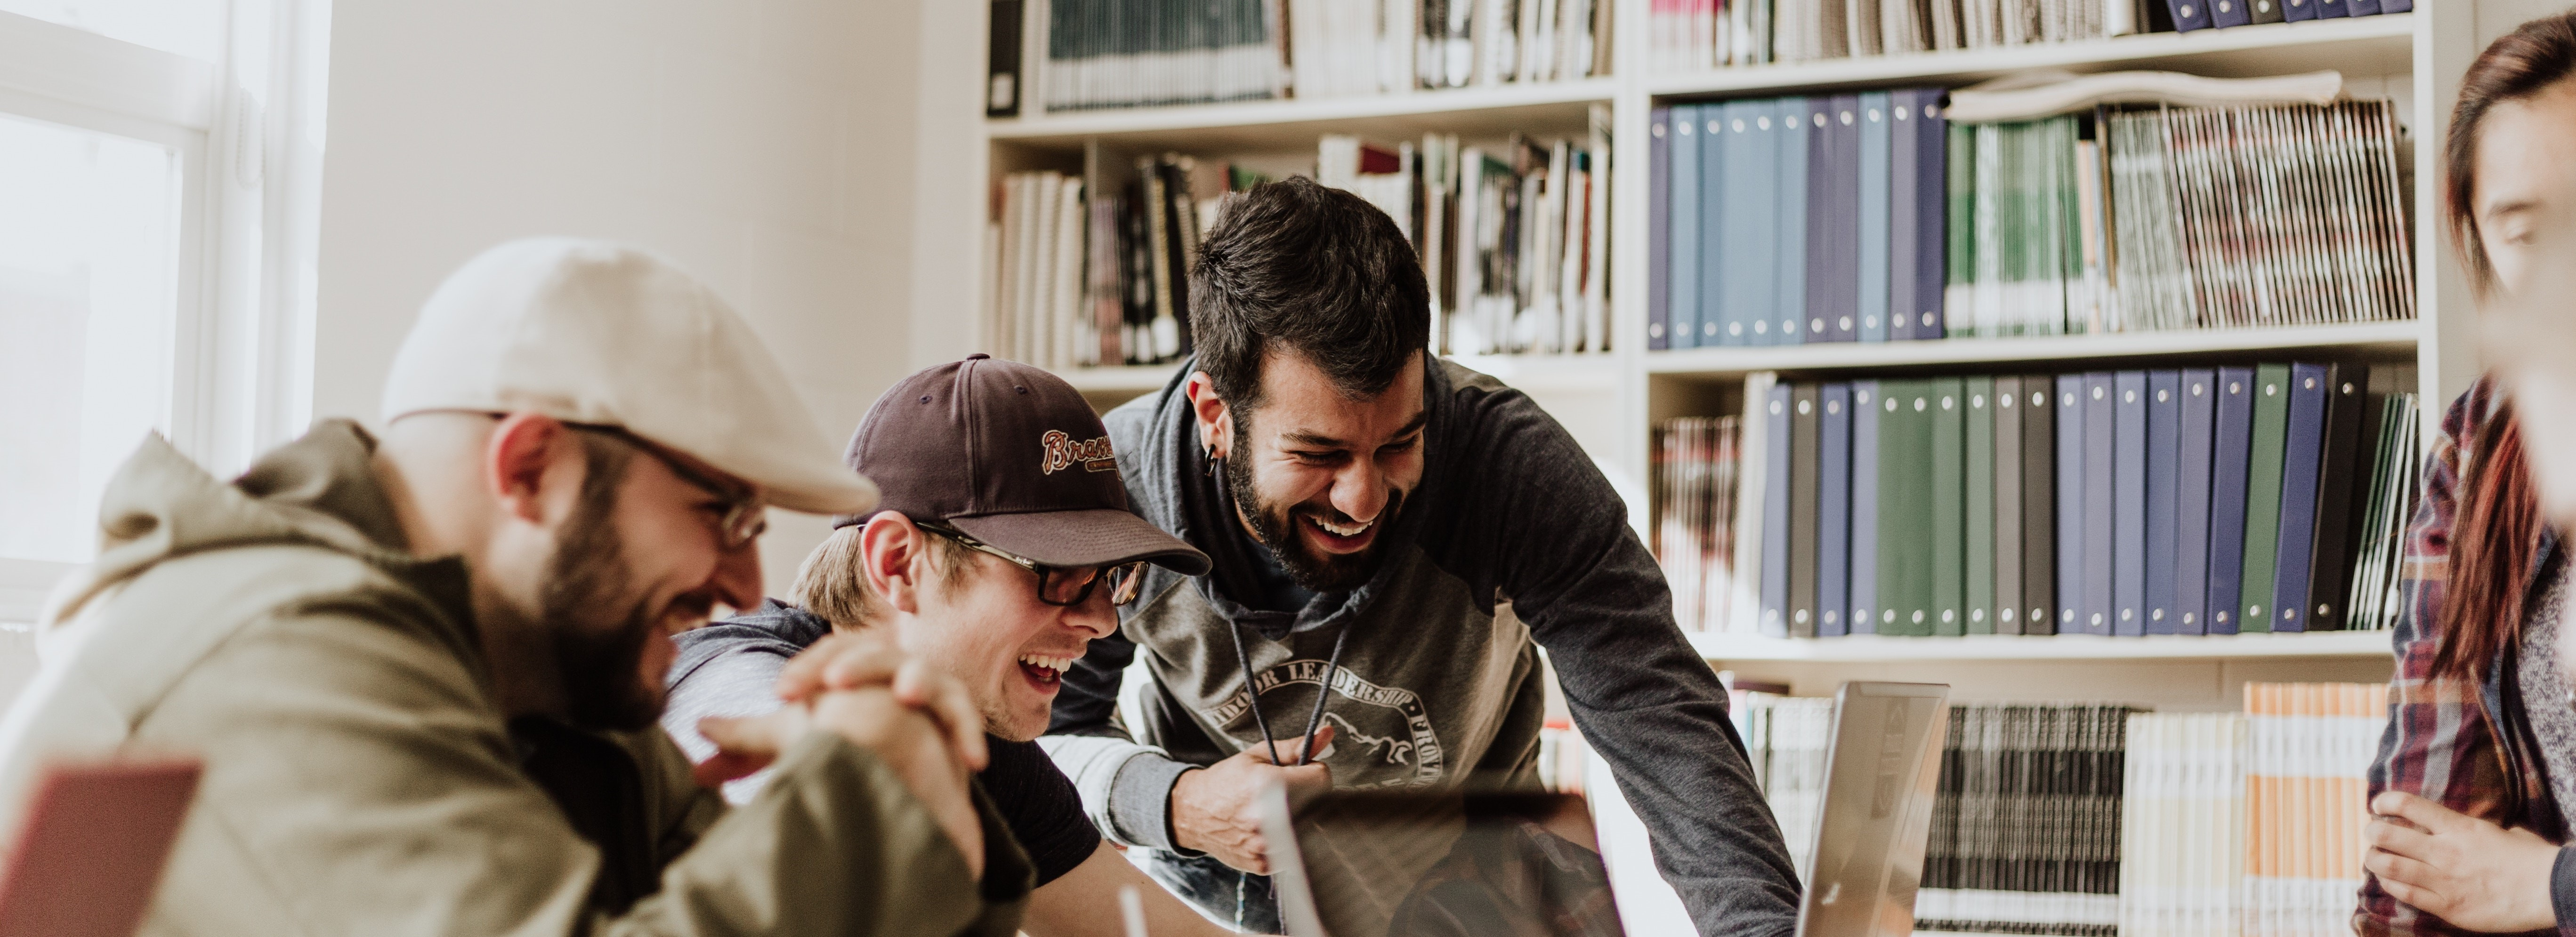 Photo by Priscilla Du Preez on Unsplash. three men laughing while looking in the laptop inside room.